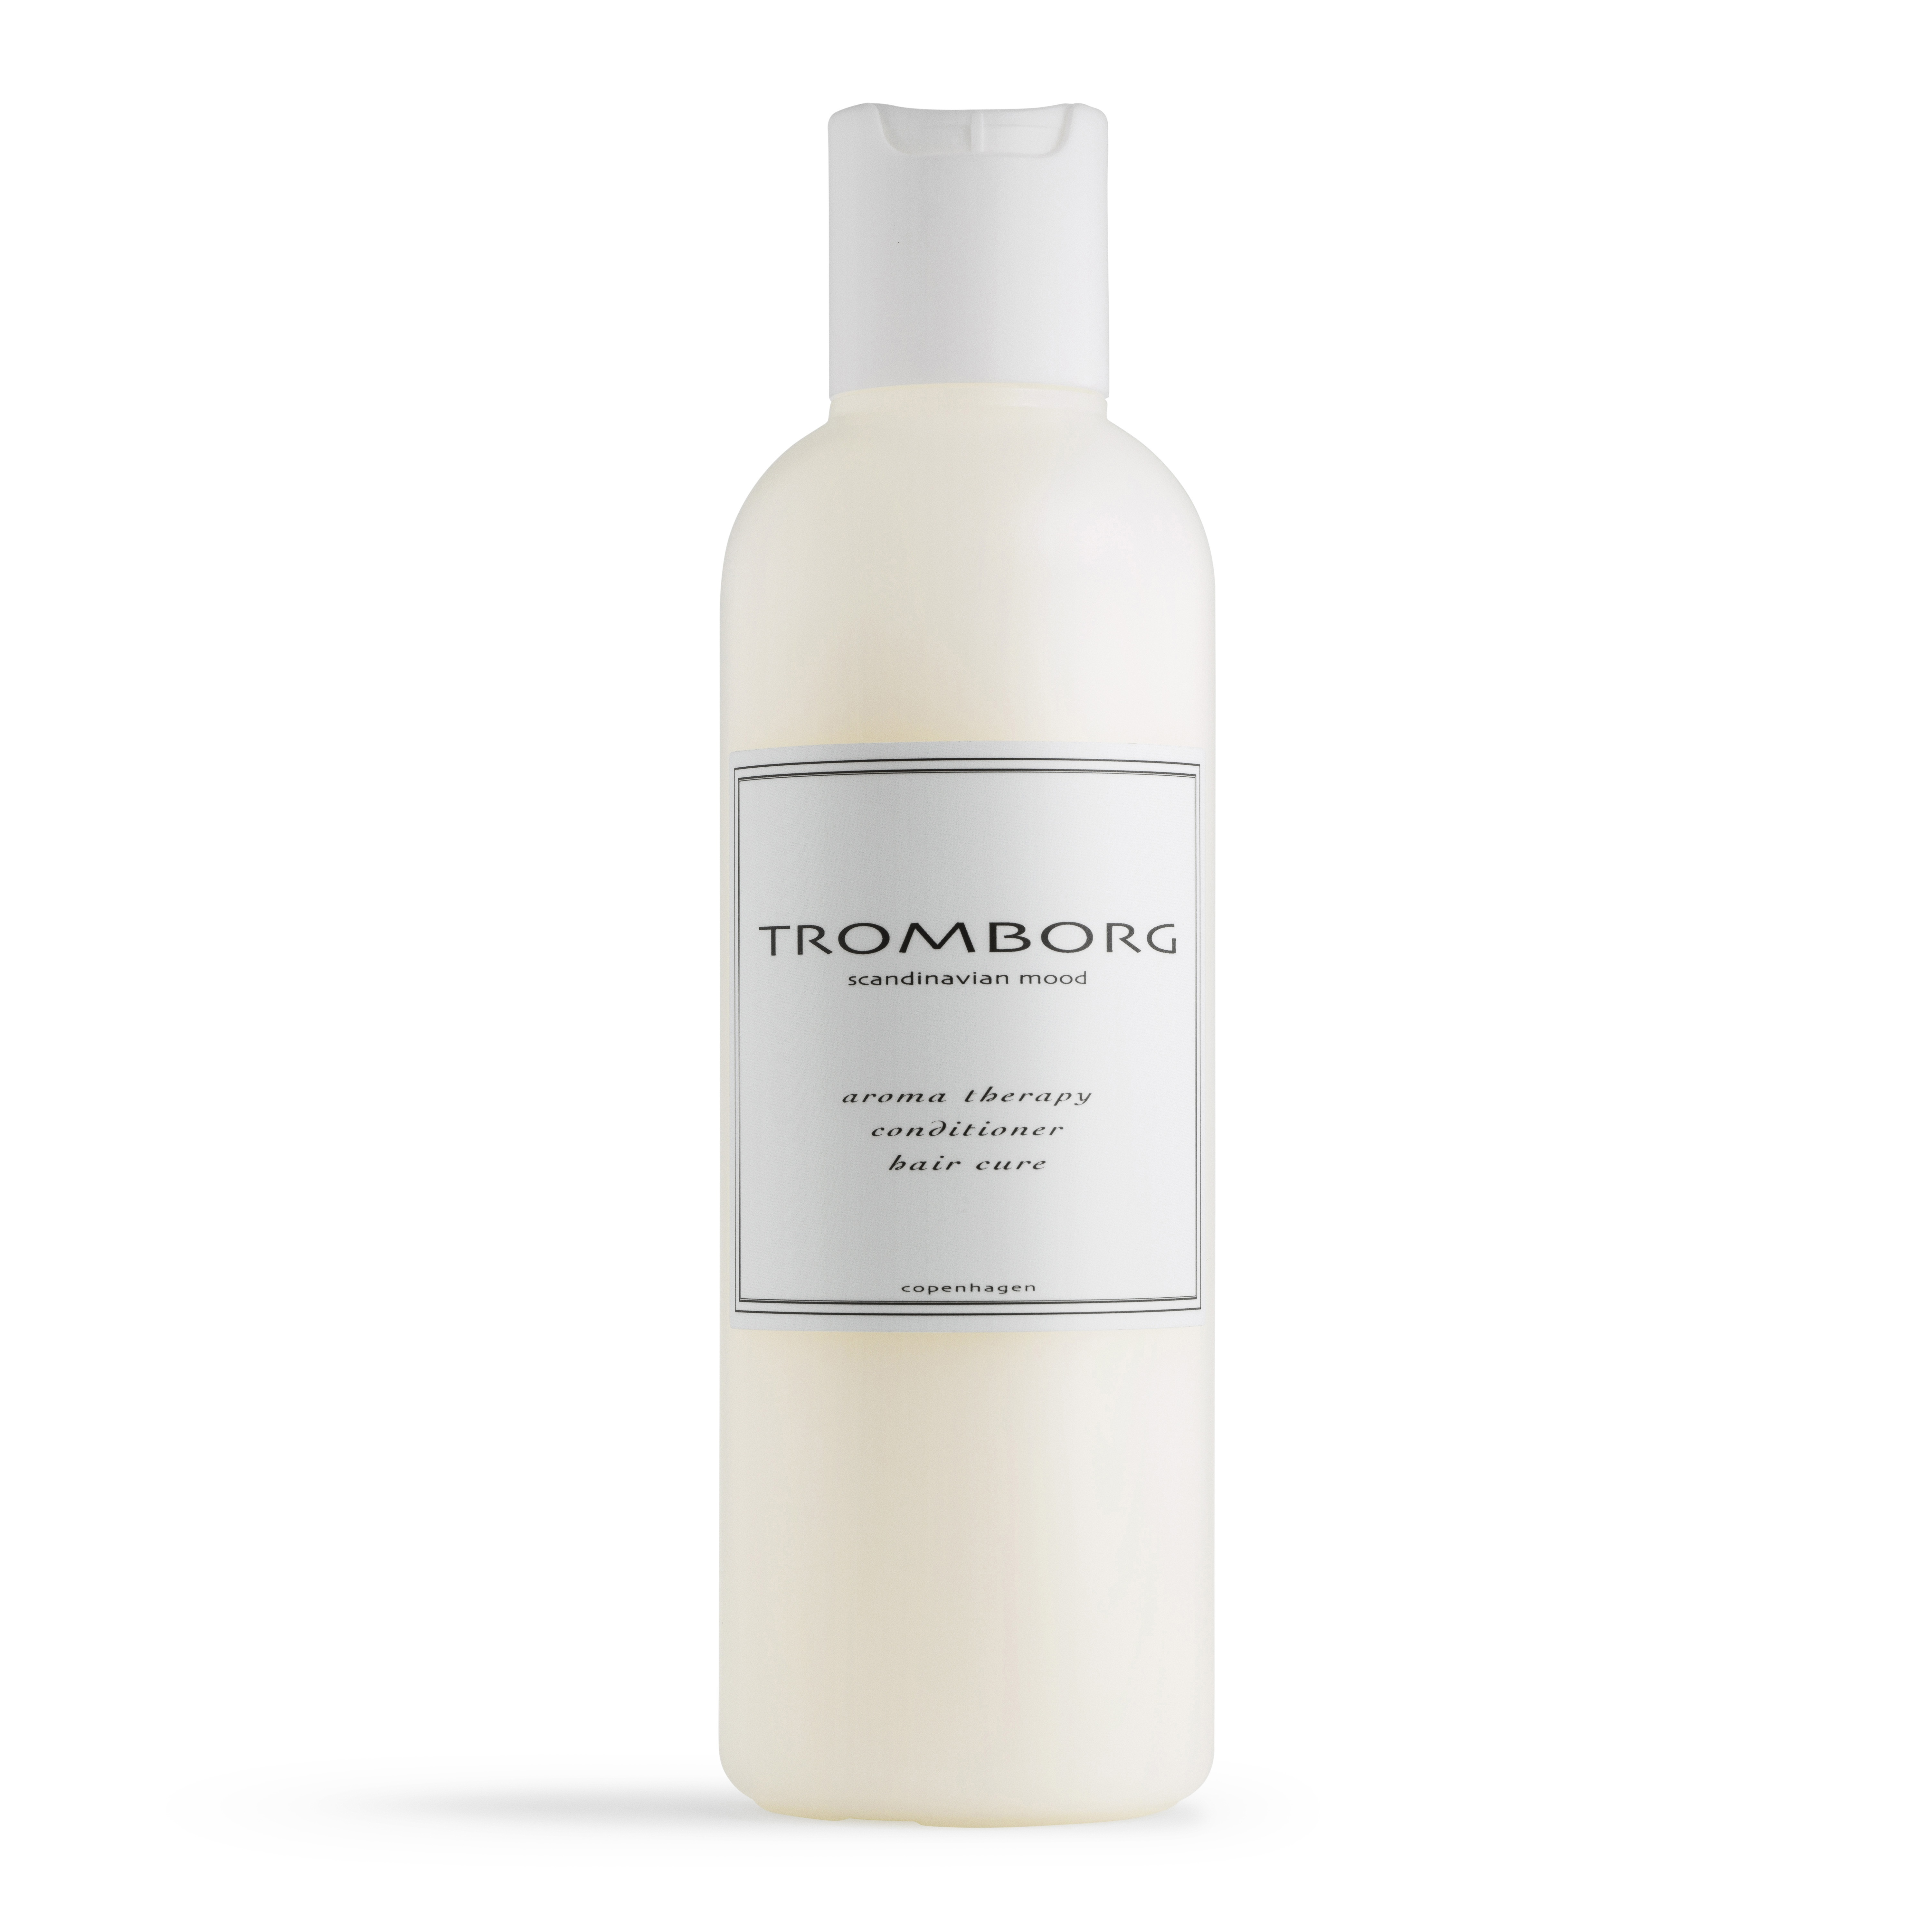 Tromborg Aroma Therapy Conditioner Hair Cure, 200 ml